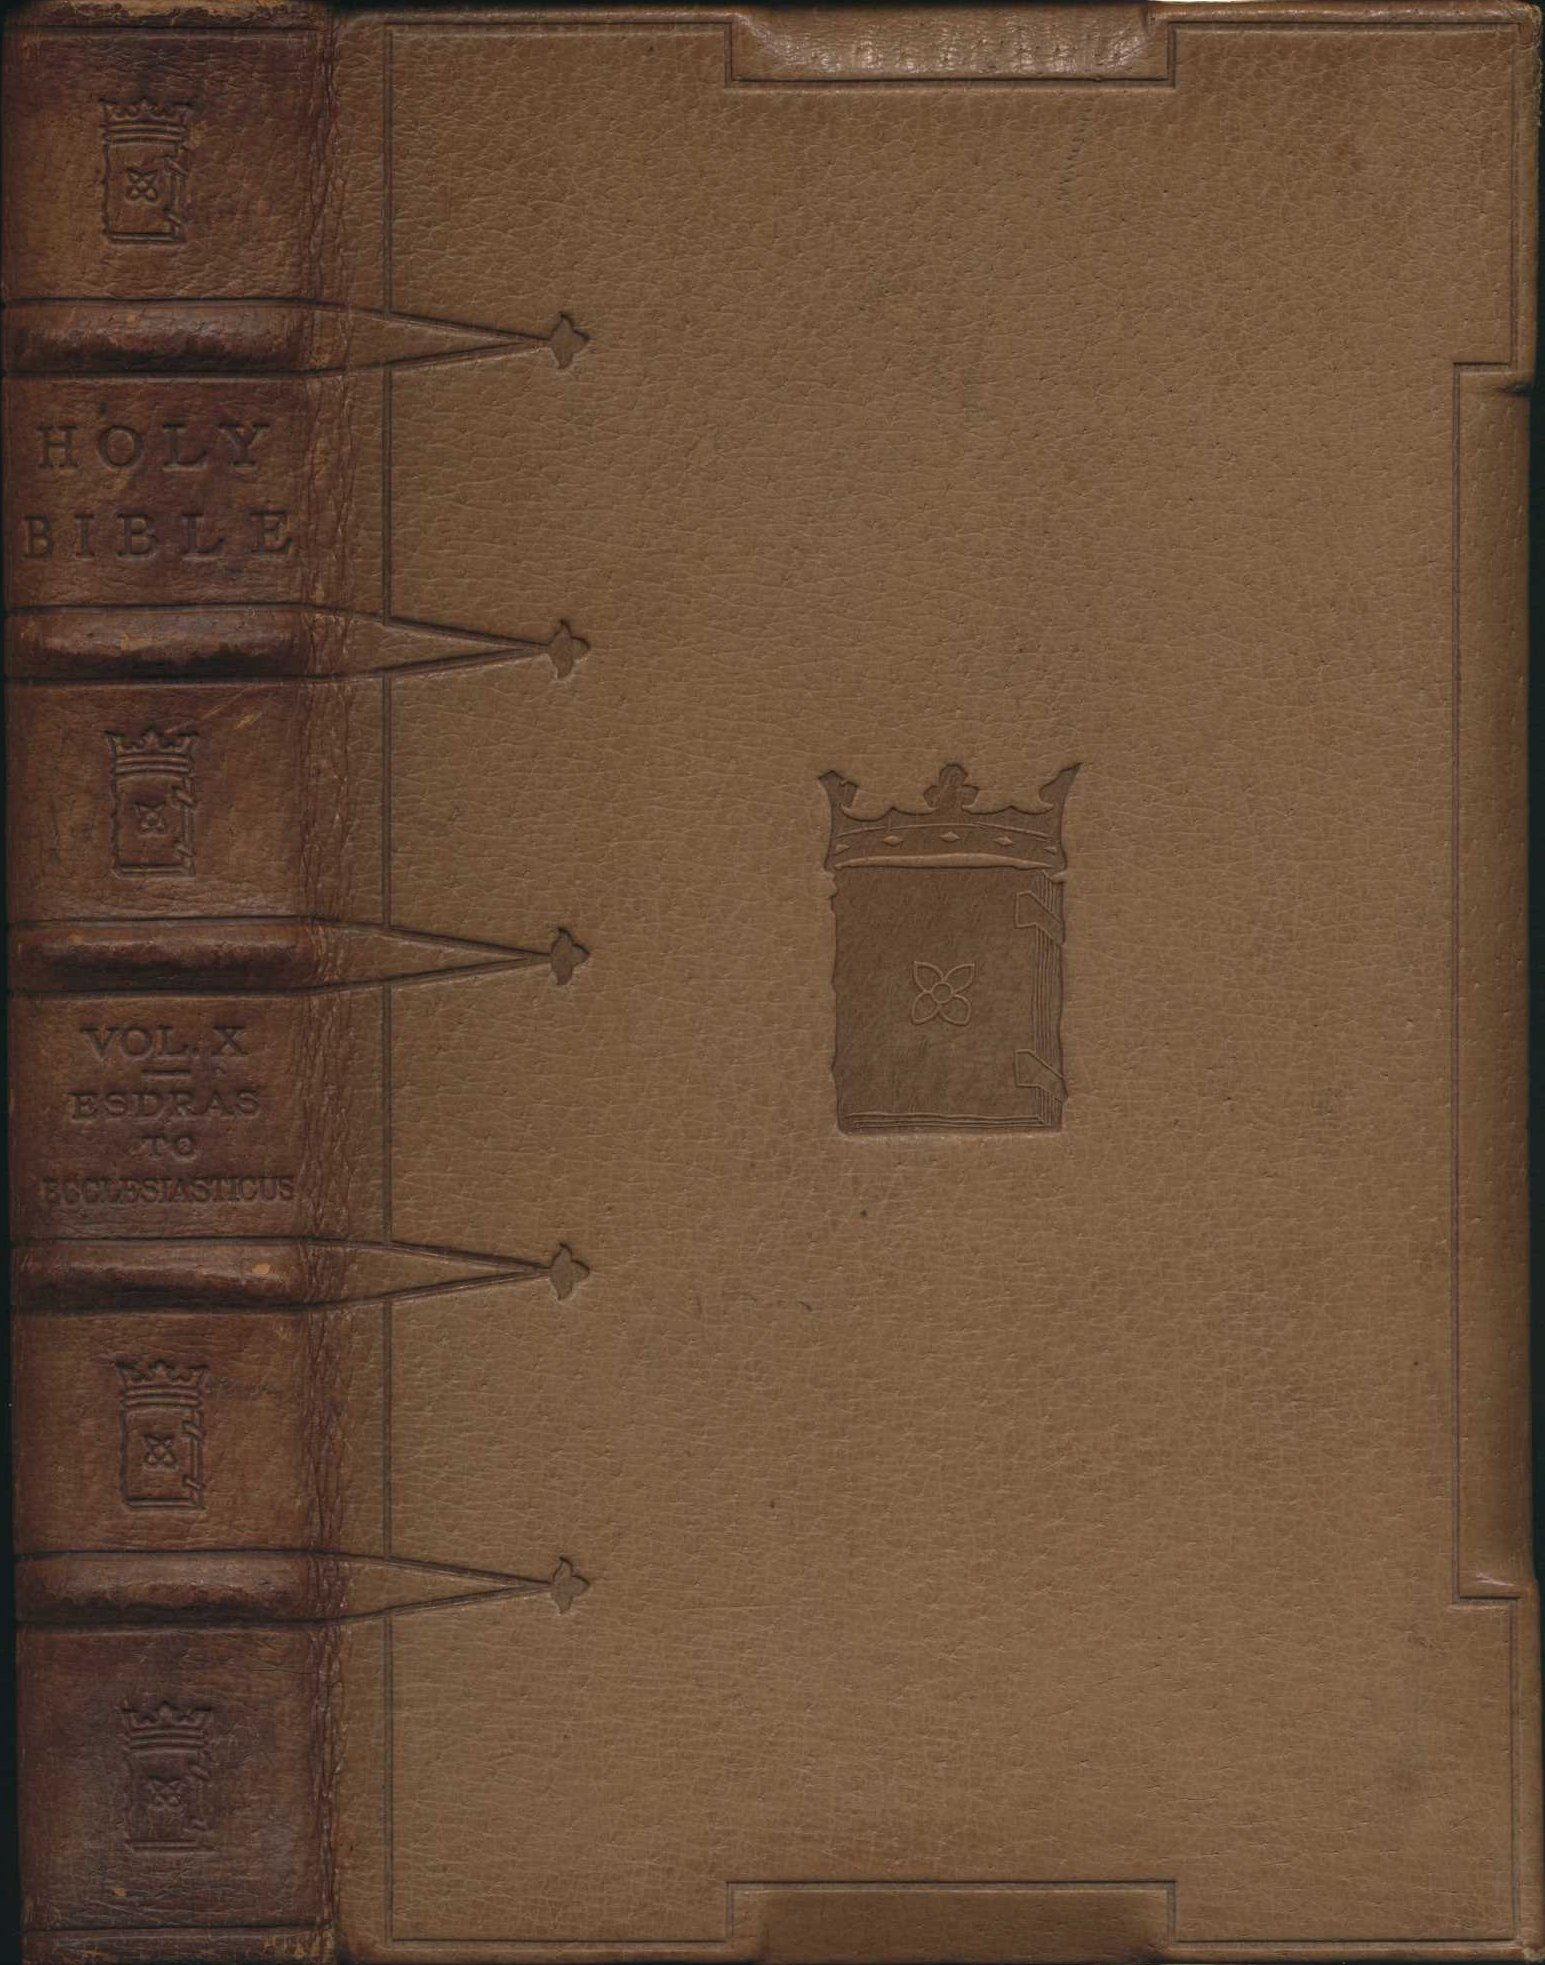 The Holy Bible containing the Old and New Testaments and the Apocrypha. Edition de luxe. London: Grolier Society, 1907. Fourteen volumes; Vol. 10 displayed.